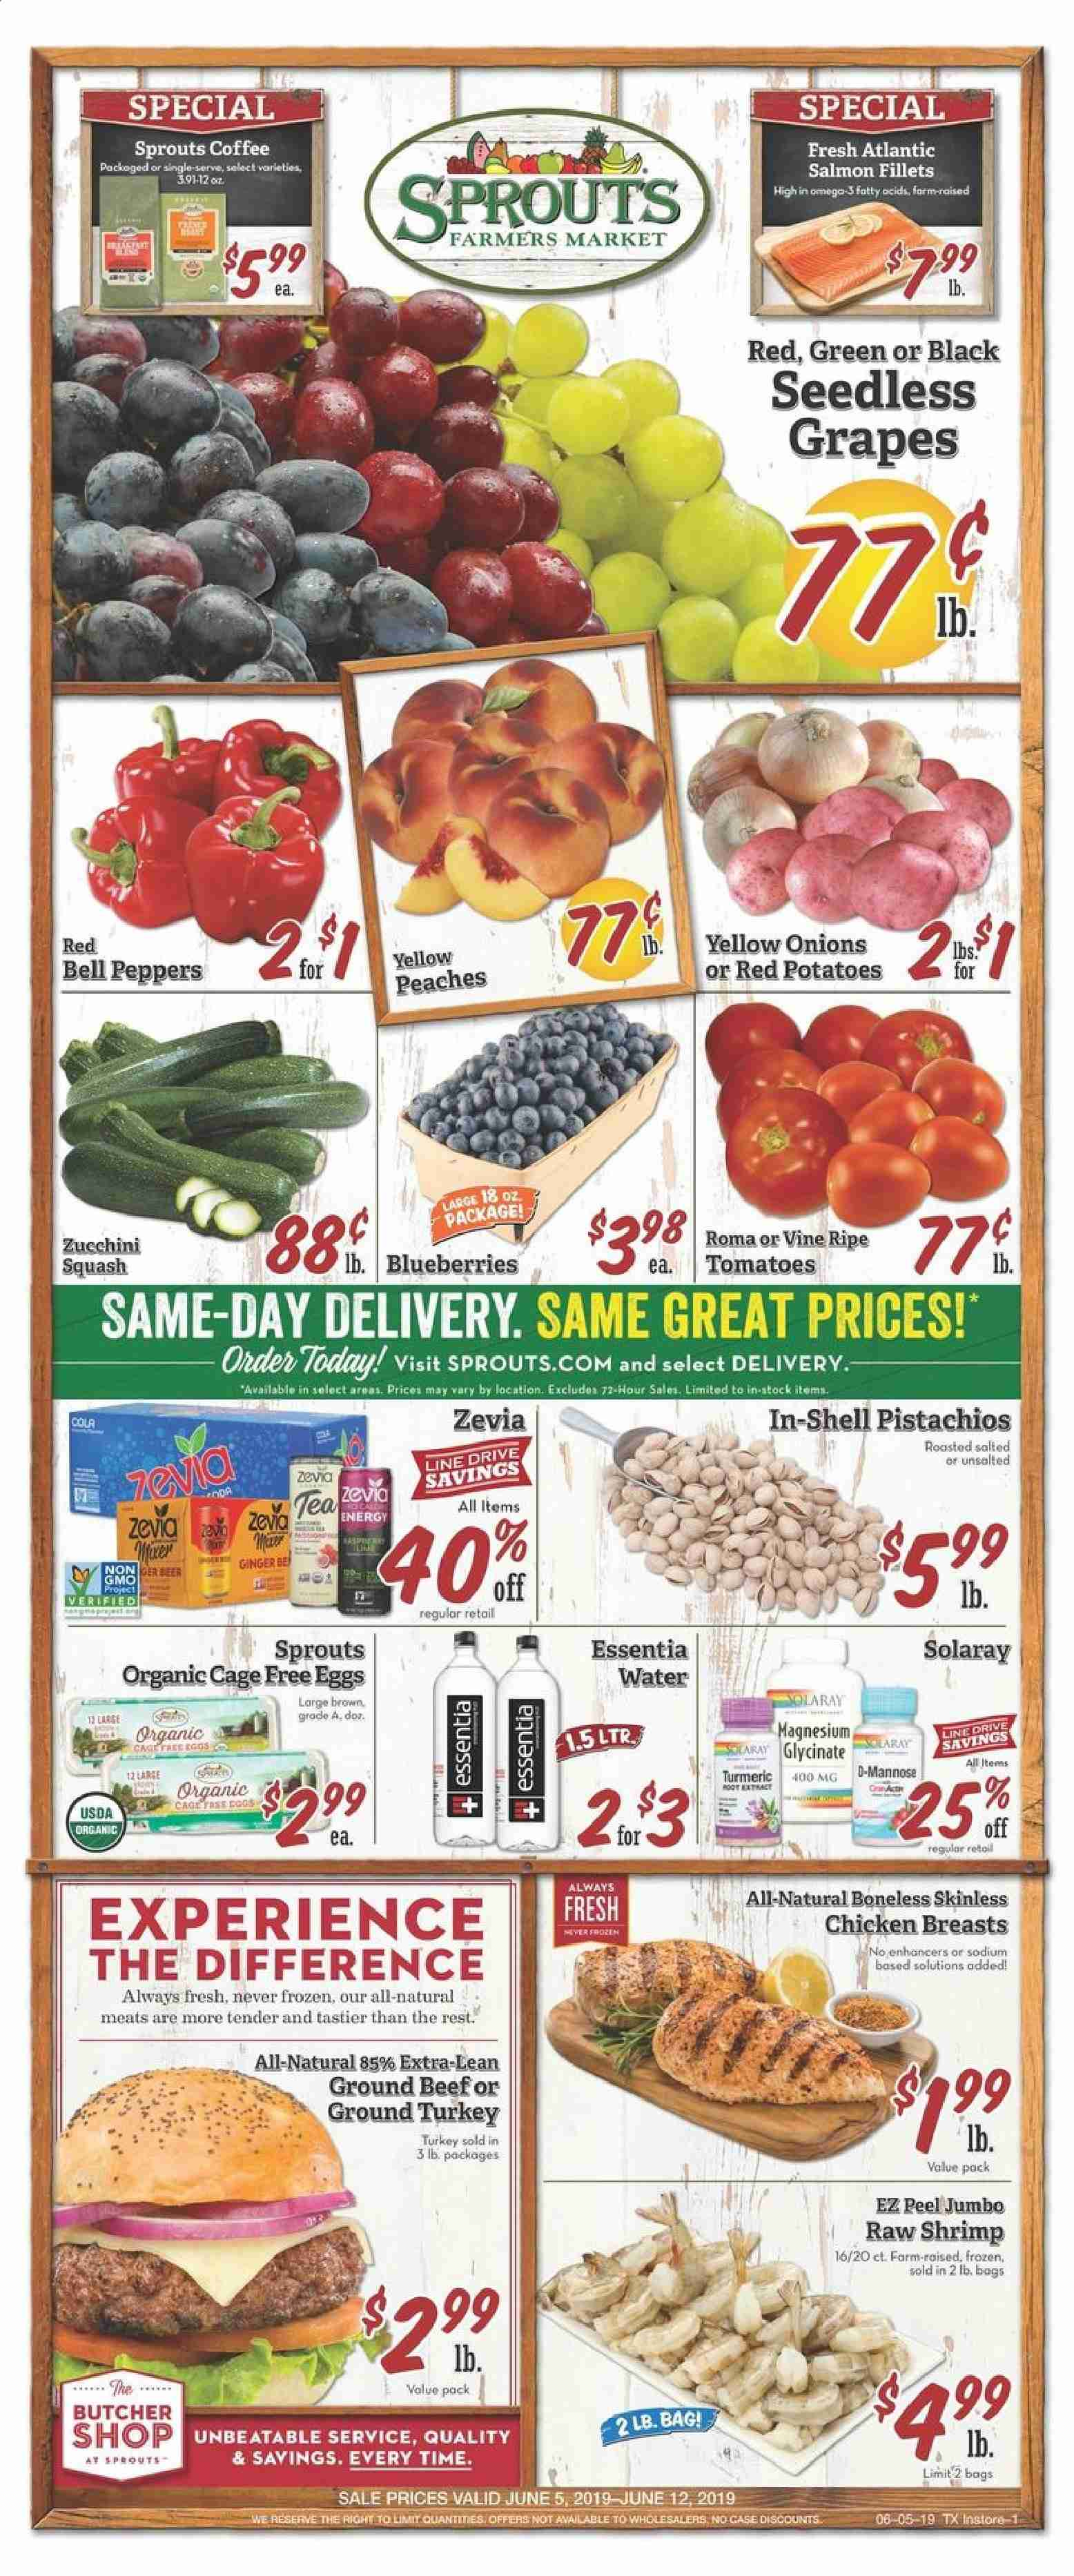 Sprouts Flyer - 06.05.2019 - 06.12.2019 - Sales products - bell peppers, ginger, squash, tomatoes, yellow onions, potatoes, onion, peppers, blueberries, grapes, seedless grapes, peache, salmon, shrimps, eggs, turmeric, water, tea, coffee, ground turkey, turkey, chicken, chicken breast, beef meat, ground beef, Frozen, Magnesium, Omega-3. Page 1.